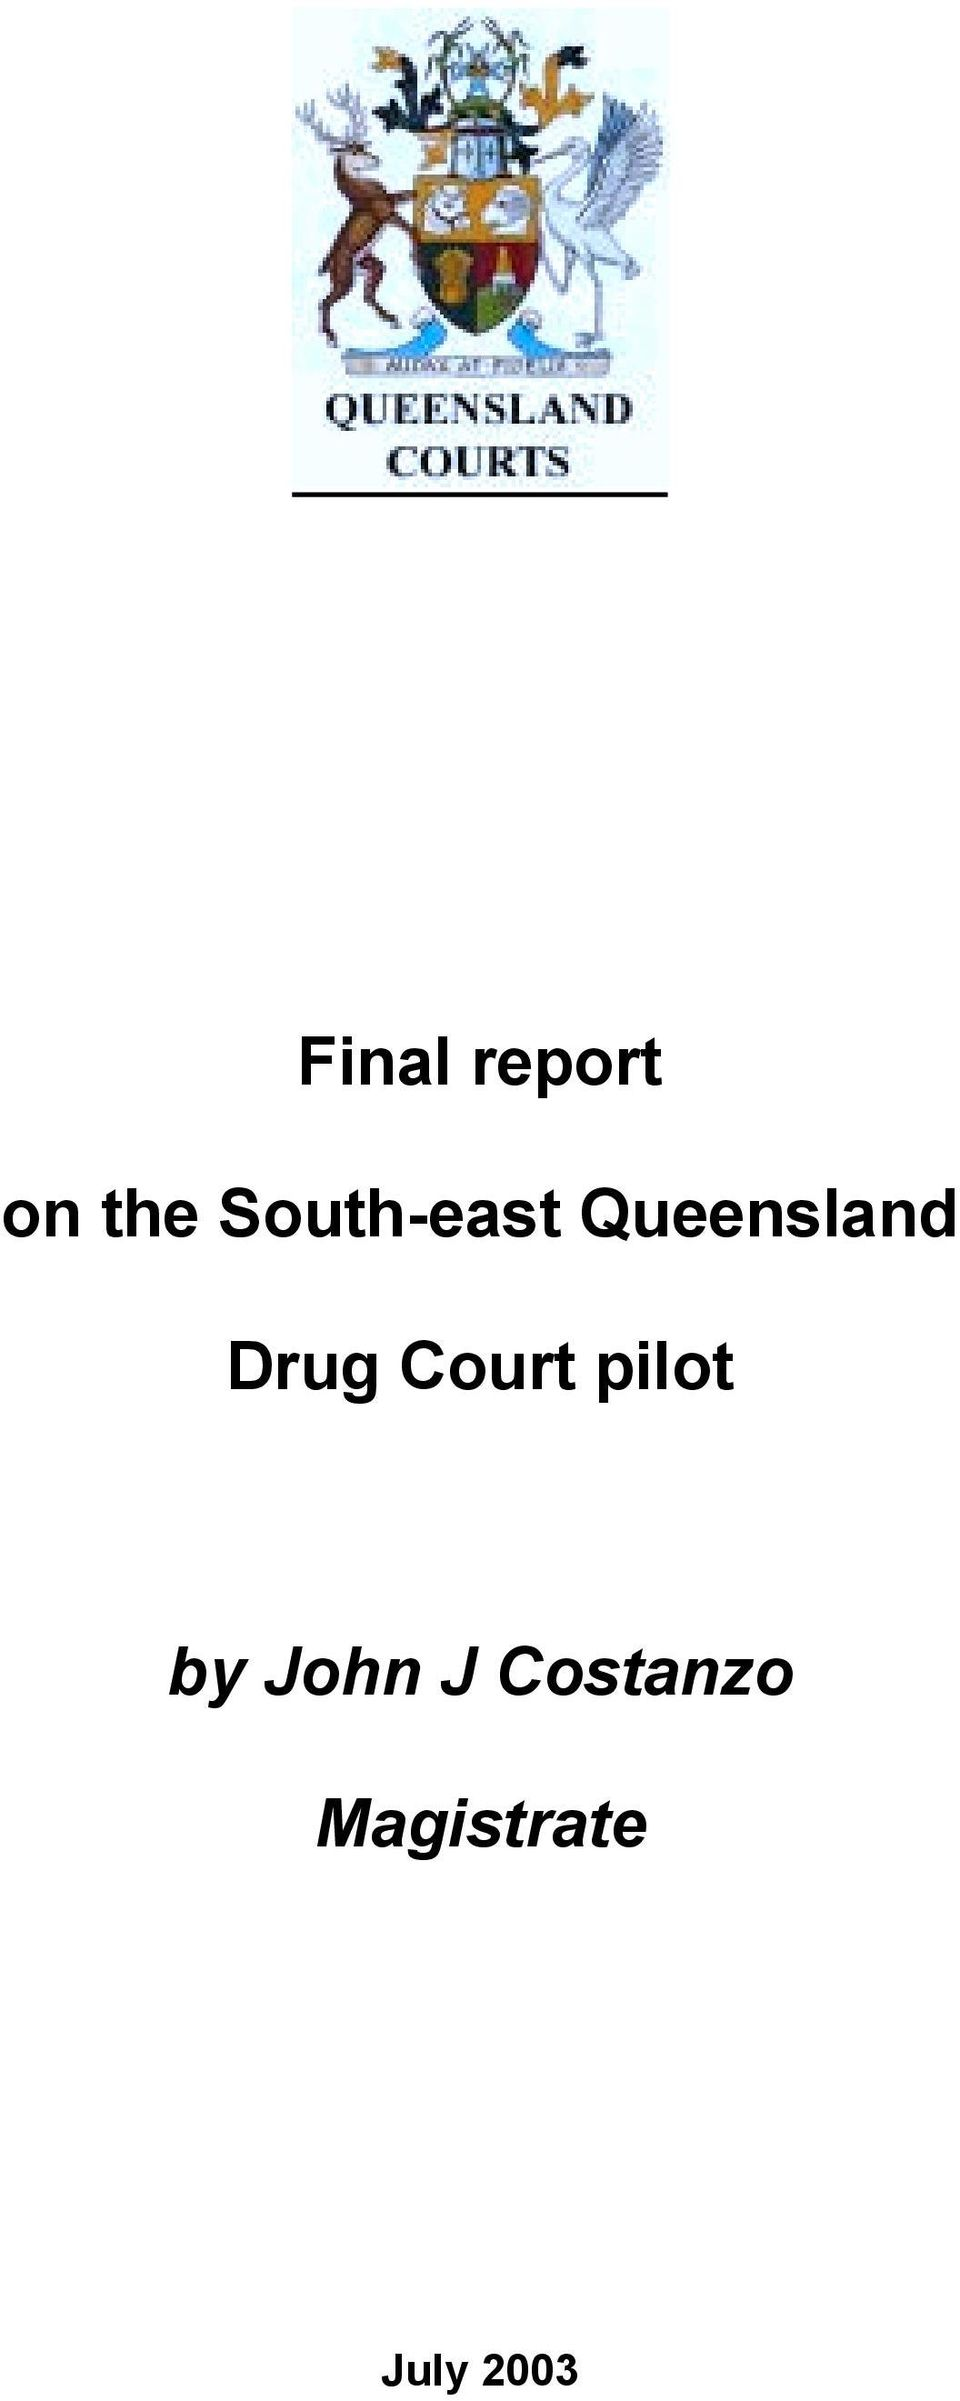 Drug Court pilot by John